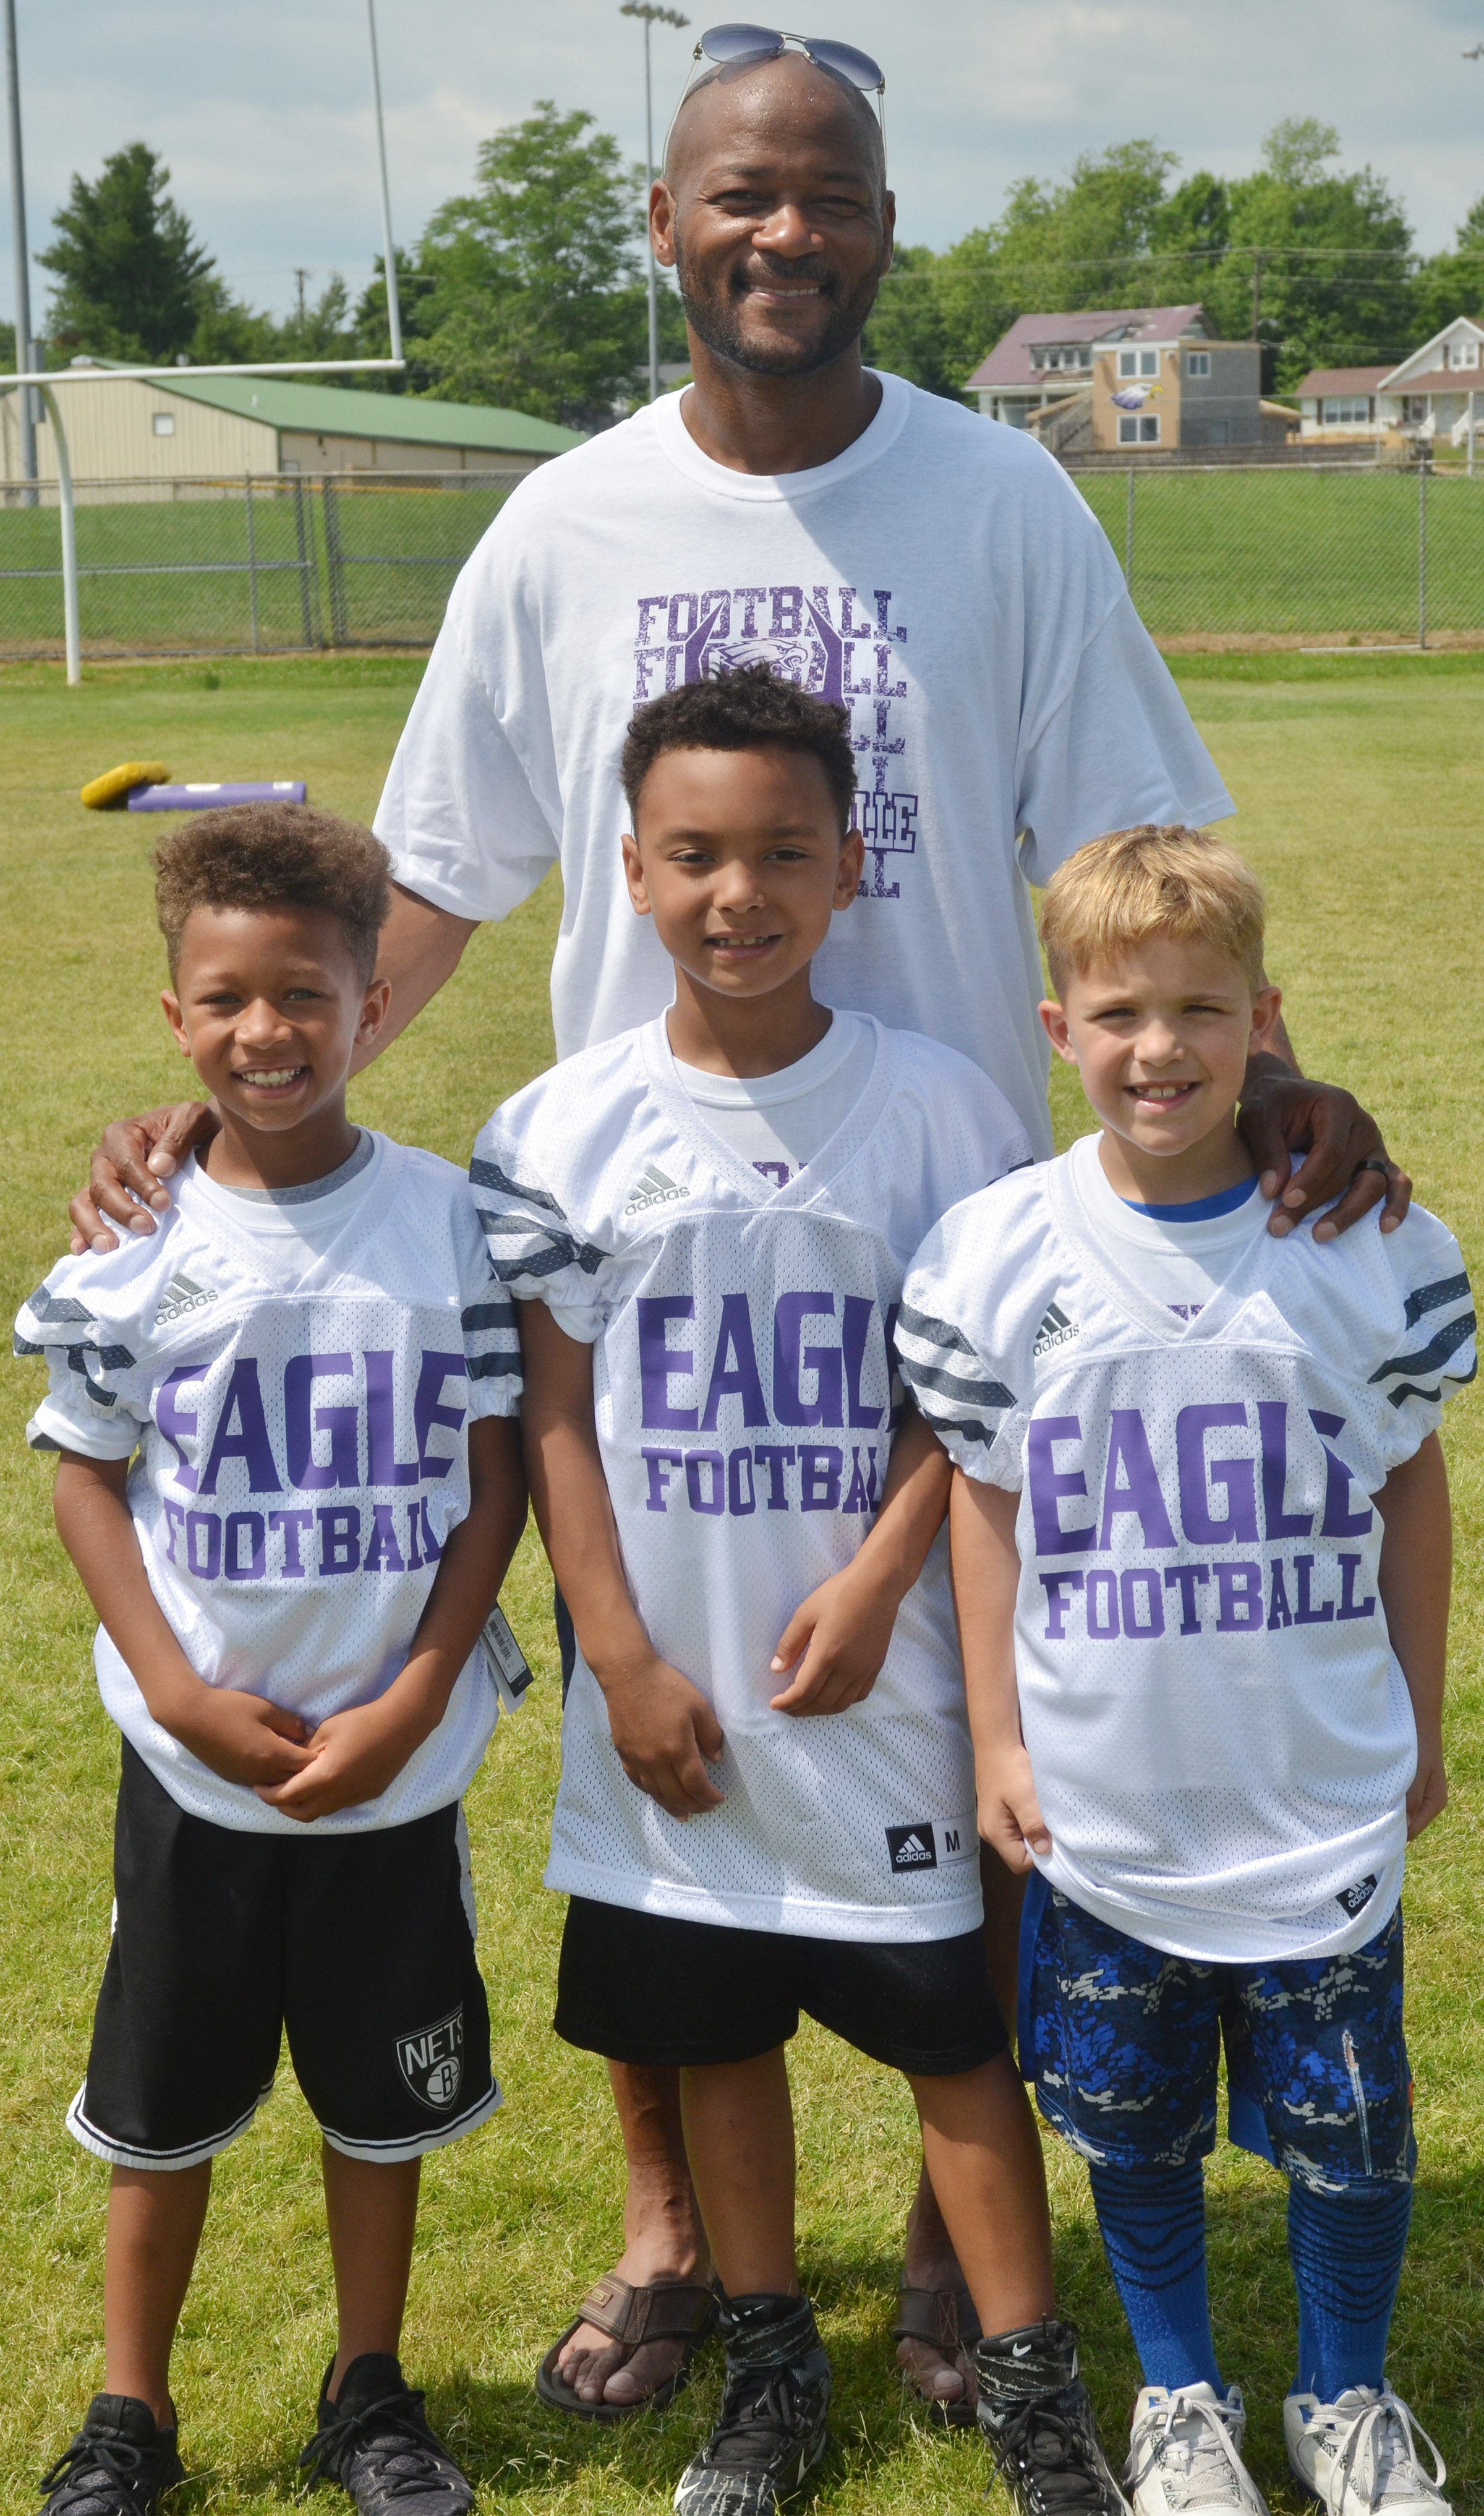 Winners of the third- and fourth-grade division are, from left, Rajon Taylor, throwing; Maddox Hawkins, kicking; and Kadin Coppage, catching. They are pictured with former NFL player Tony Driver, who worked with campers on fundamentals.